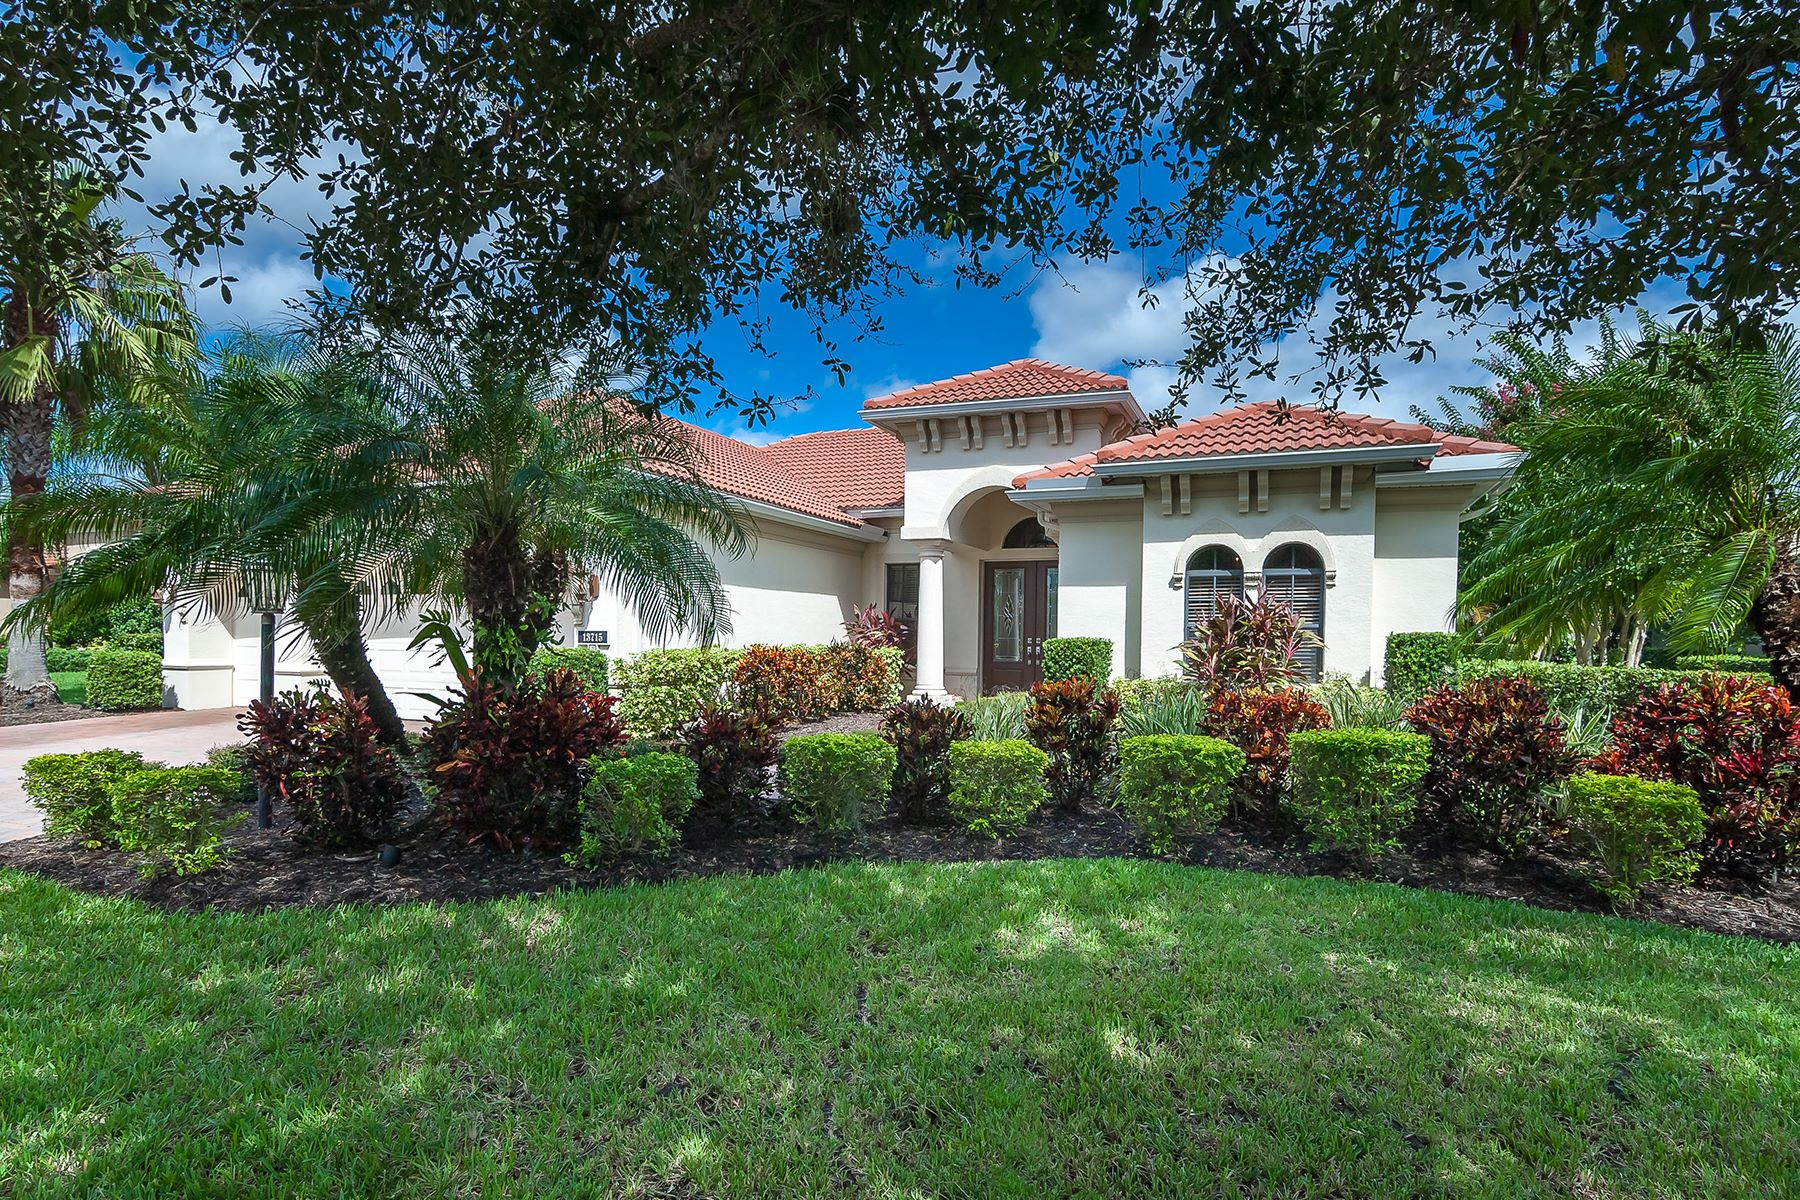 Casa Unifamiliar por un Venta en LEGENDS WALK 13715 Oasis Terr Lakewood Ranch, Florida, 34202 Estados Unidos